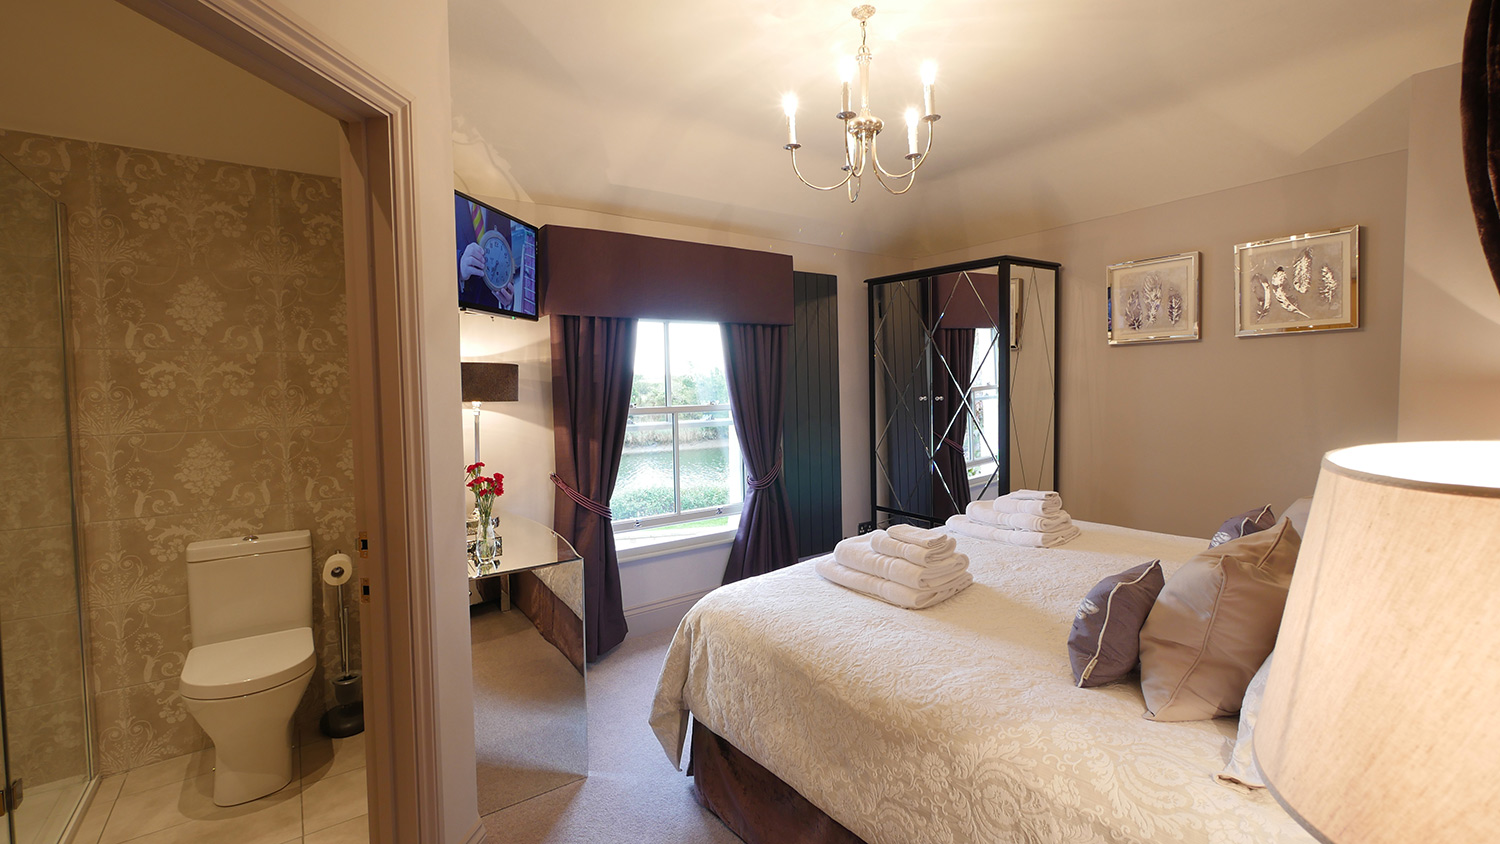 Honeybee Luxury Holiday Cottage near Alnmouth Northumberland accepts pets